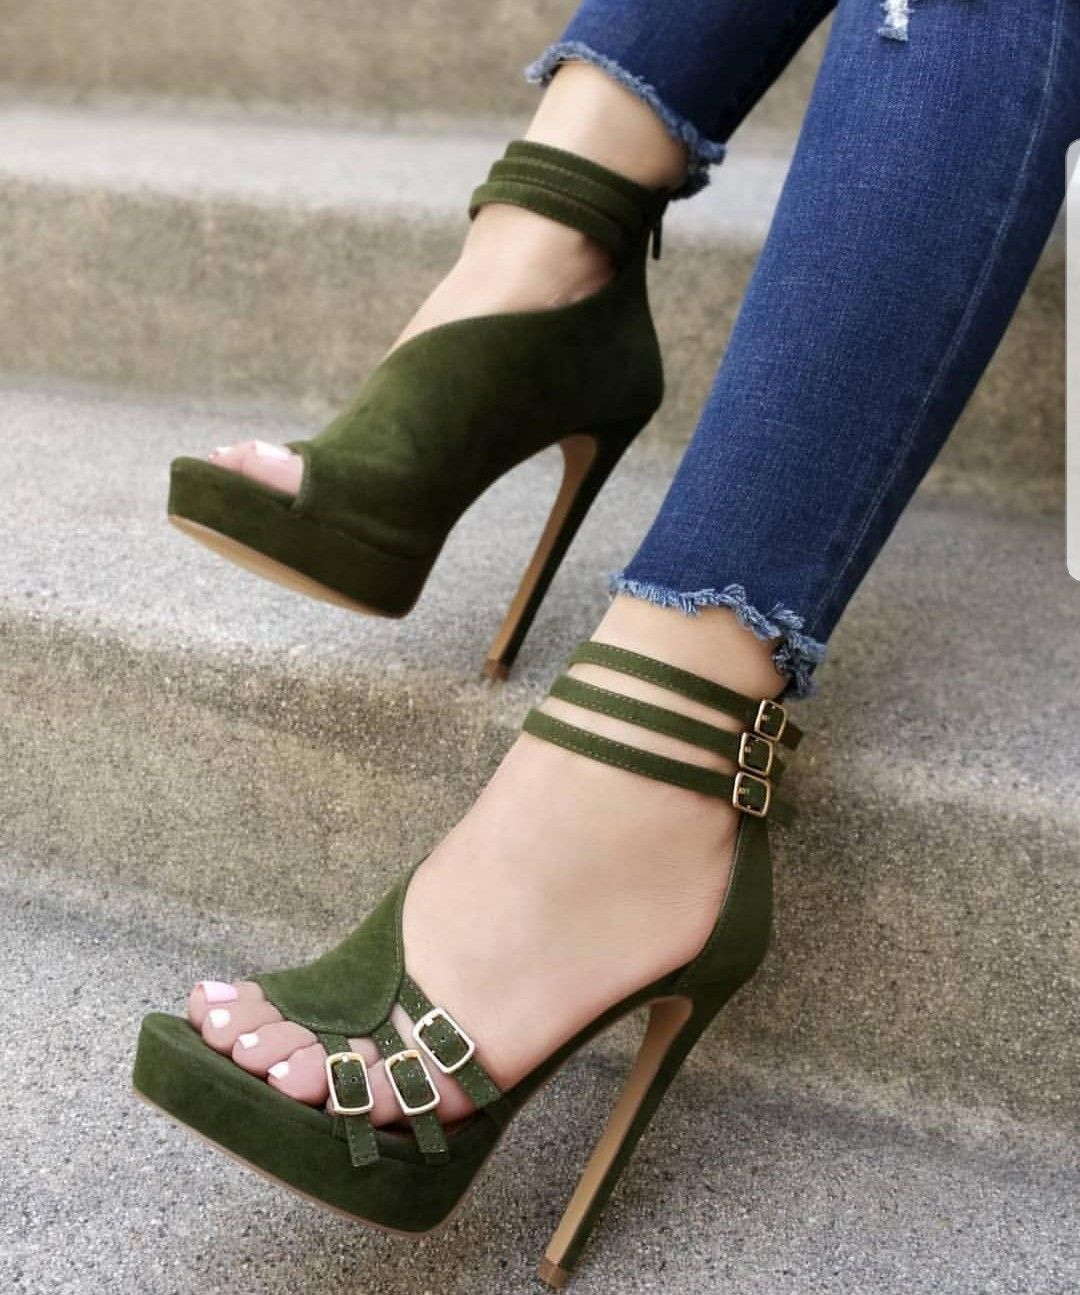 High Heels Efficient Women High Heel Snake Sandals Women Shoes Pumps Office Lady Pointed Toe Sandals Platform Sexy Wedding Party Sapato Feminino Shoes